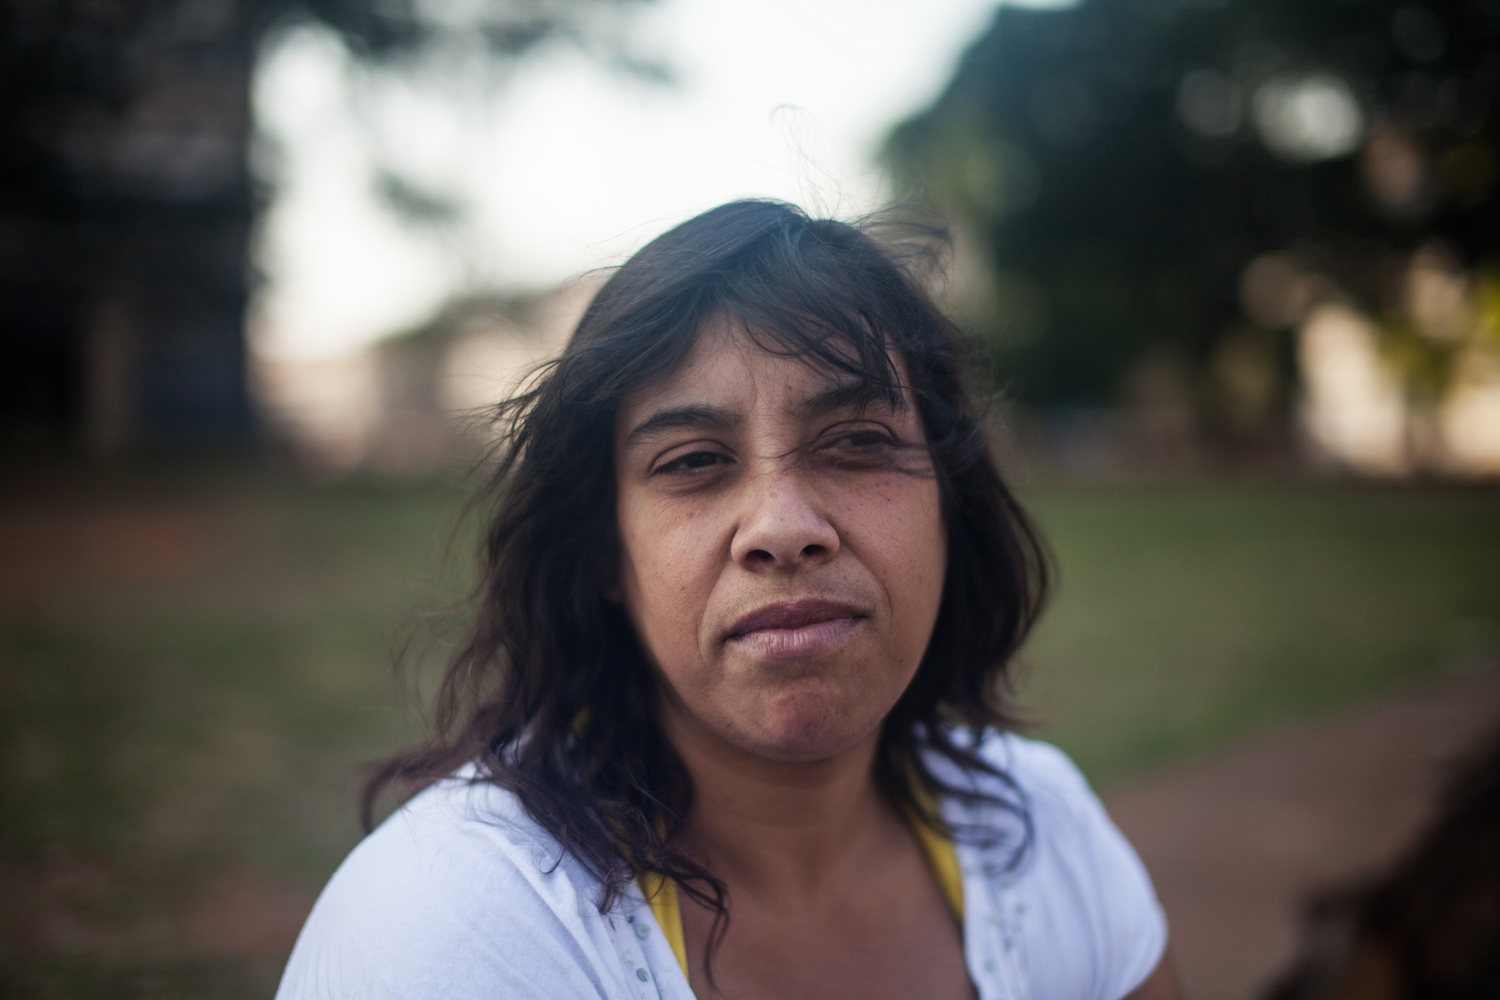 "Patricia Alves, an addict part of the De Braços Abertos program, was a photographer working at a commercial center before she ended up in Cracôlandia seven years ago. She did so after falling in love with a man who was addicted to crack. Her daughter disappeared one day while they were sleeping in the street. She sees having her own room like a luxury she's thankful for. ""De Braços Abertos trusted us. It gave us an opportunity, which many didn't do,"" she said."